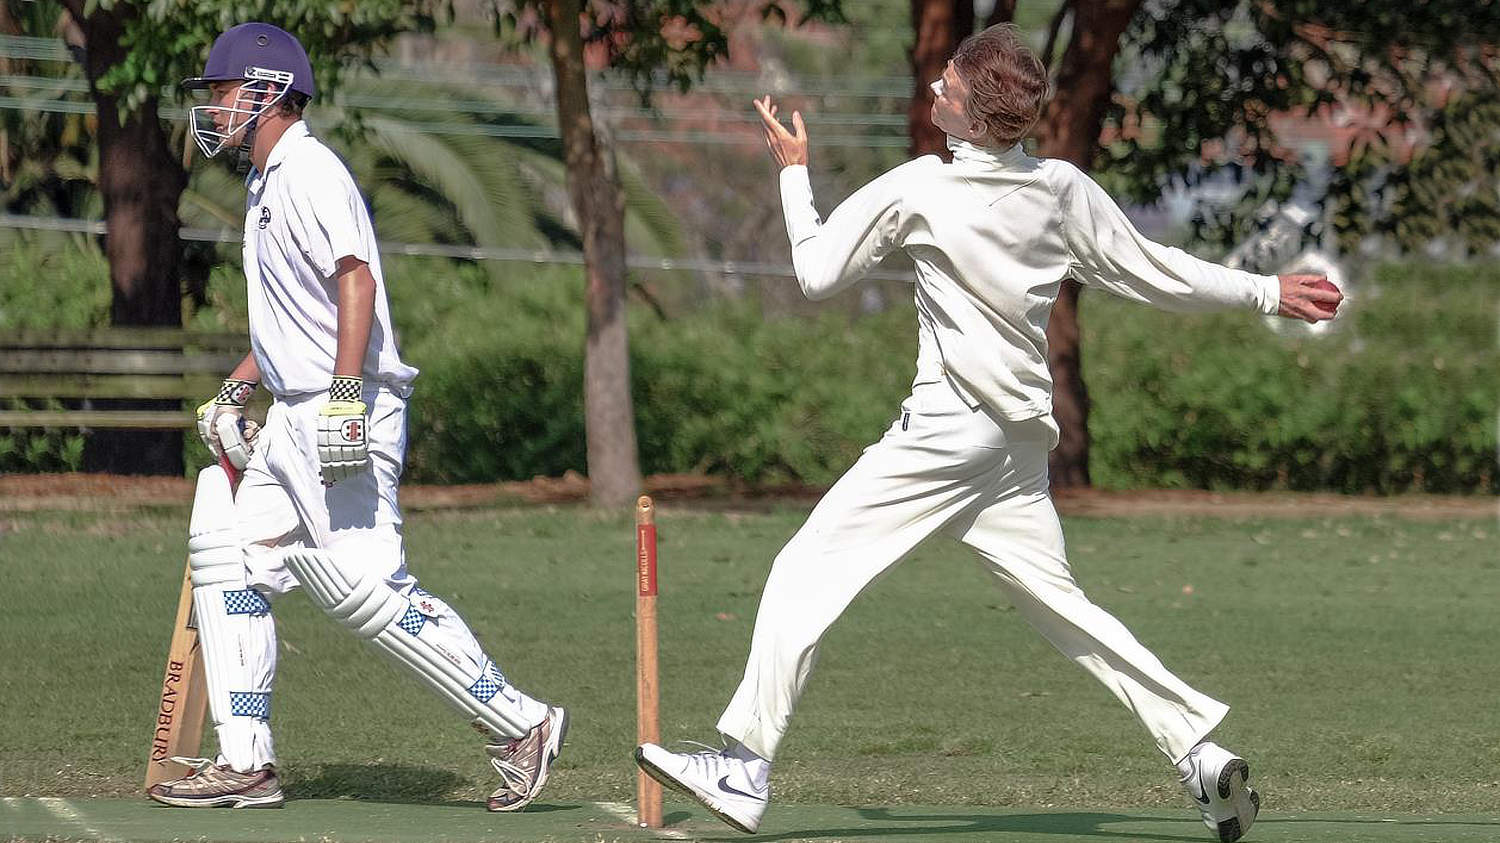 Jeff Duff playing Cricket